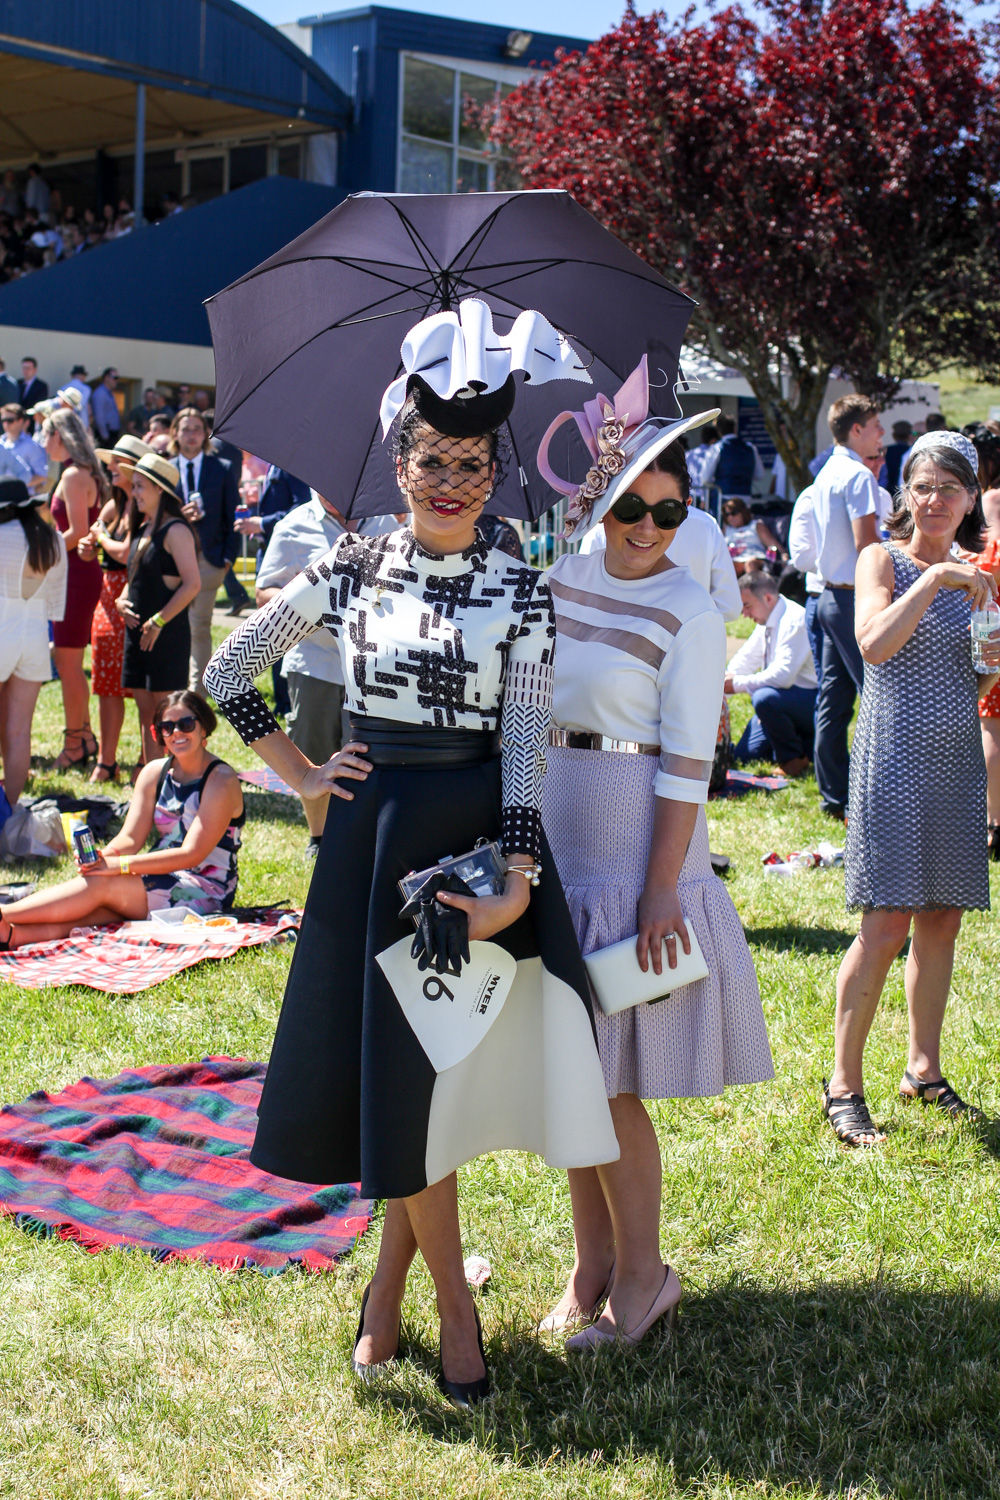 Fashions on the field style at Ballarat Cup Melbourne Spring racing carnival fashions on the field